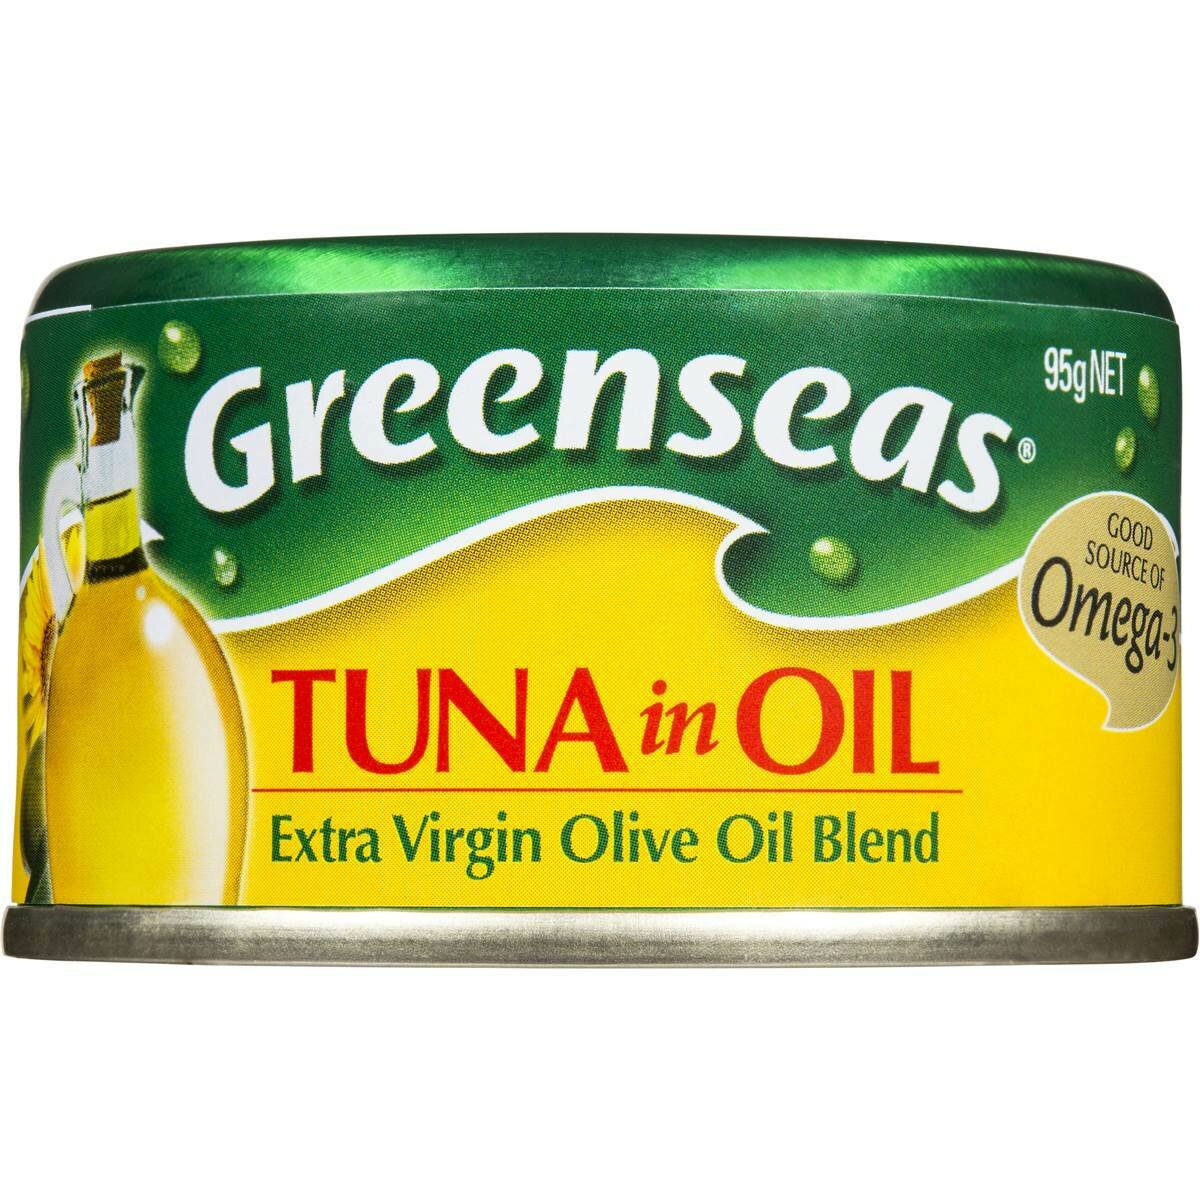 Greenseas Tuna in oil